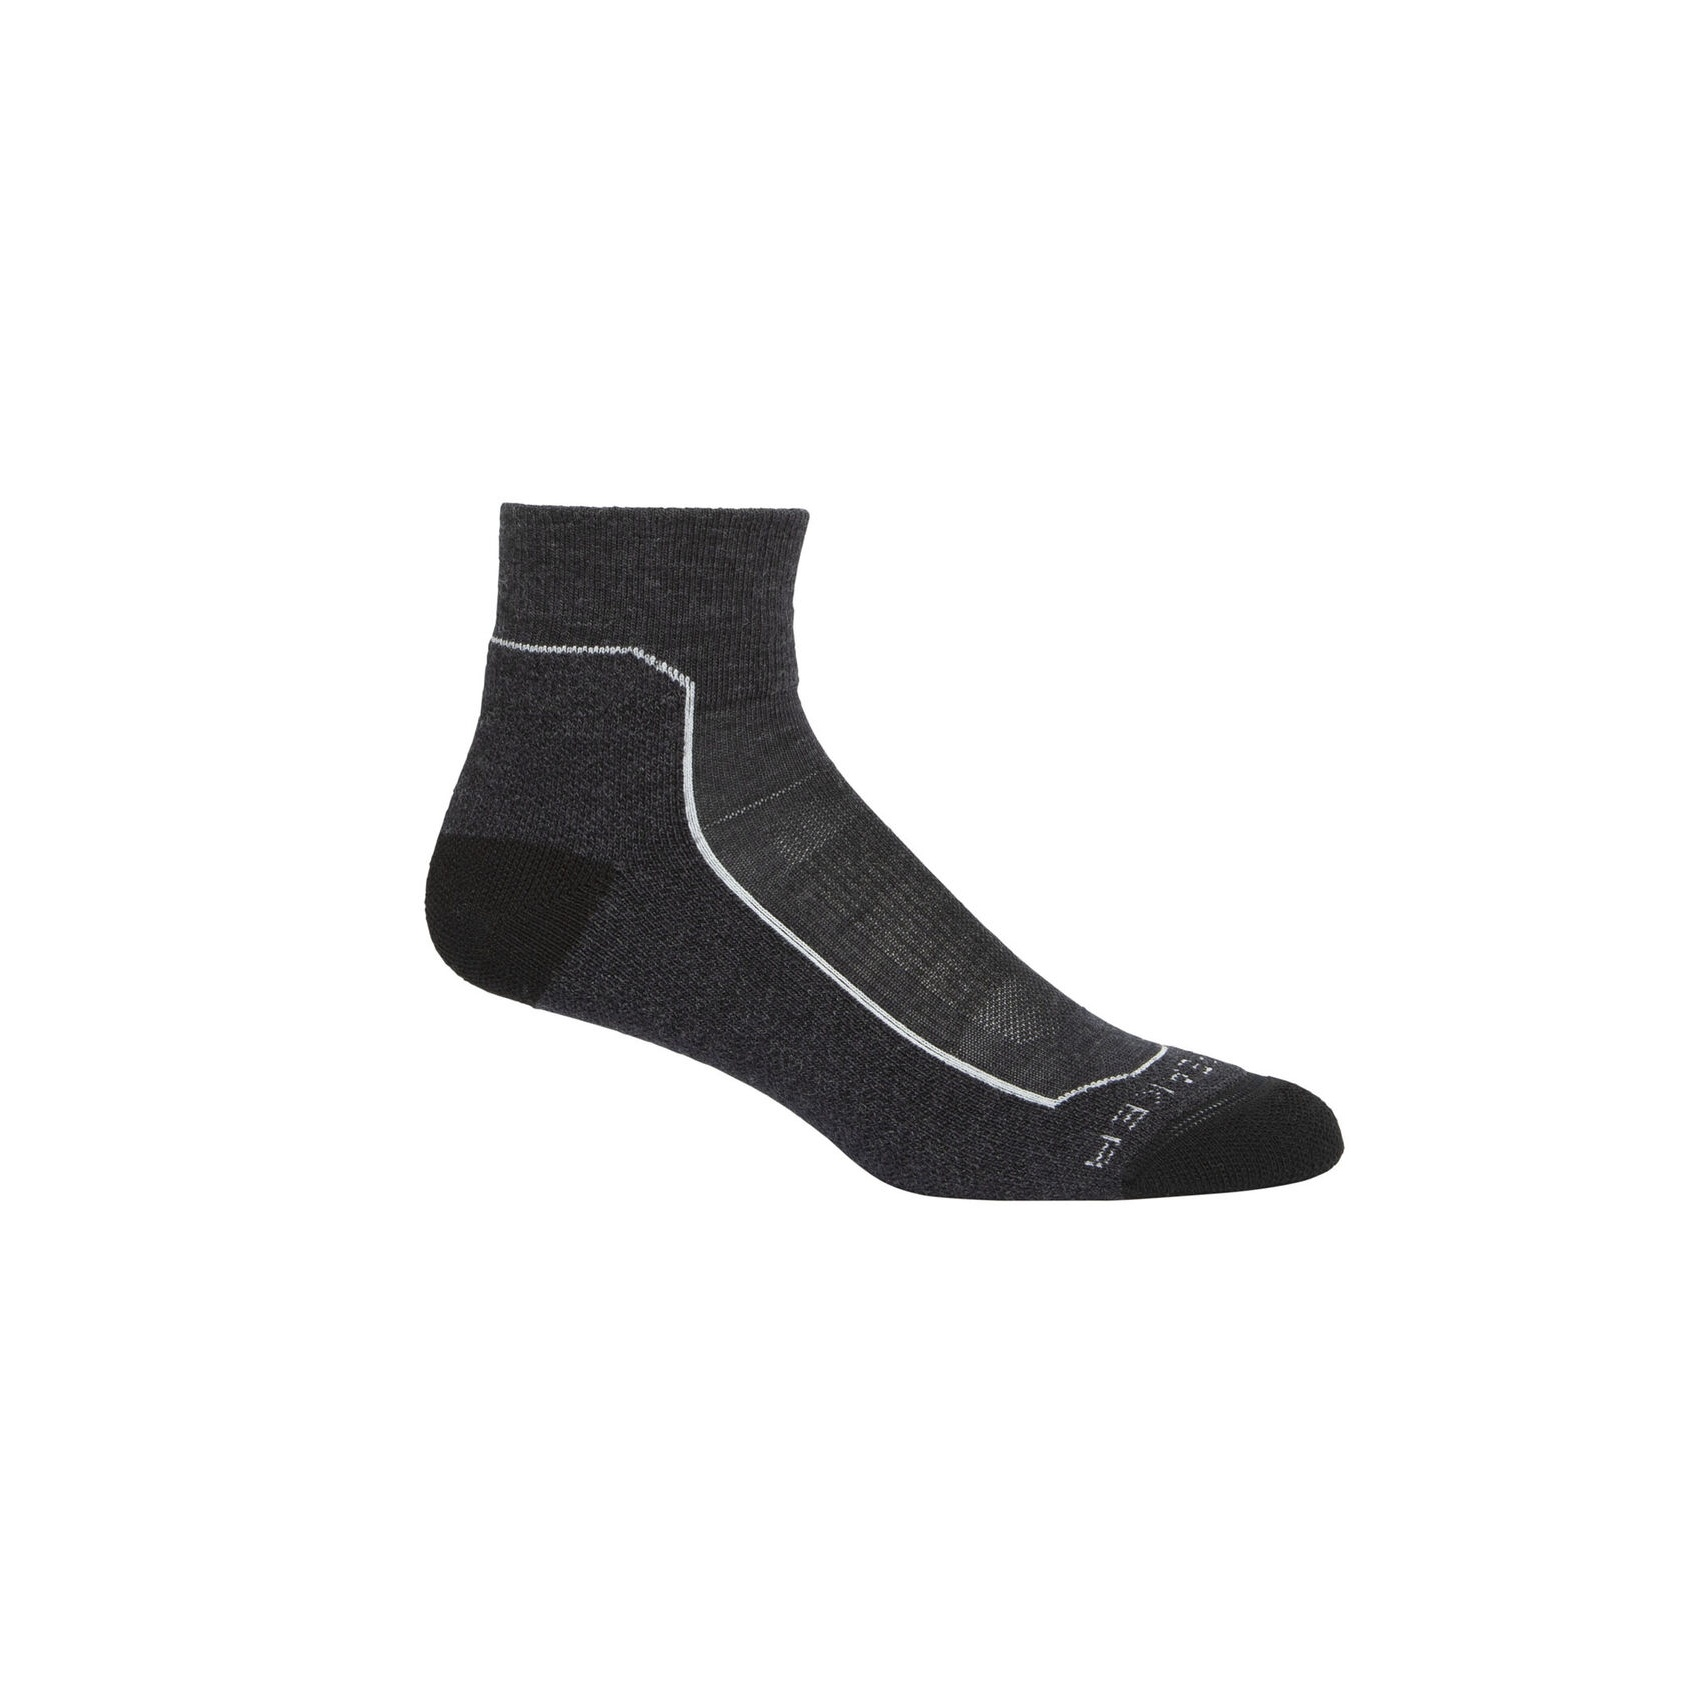 Hike+ Light Mini Sock - Men's